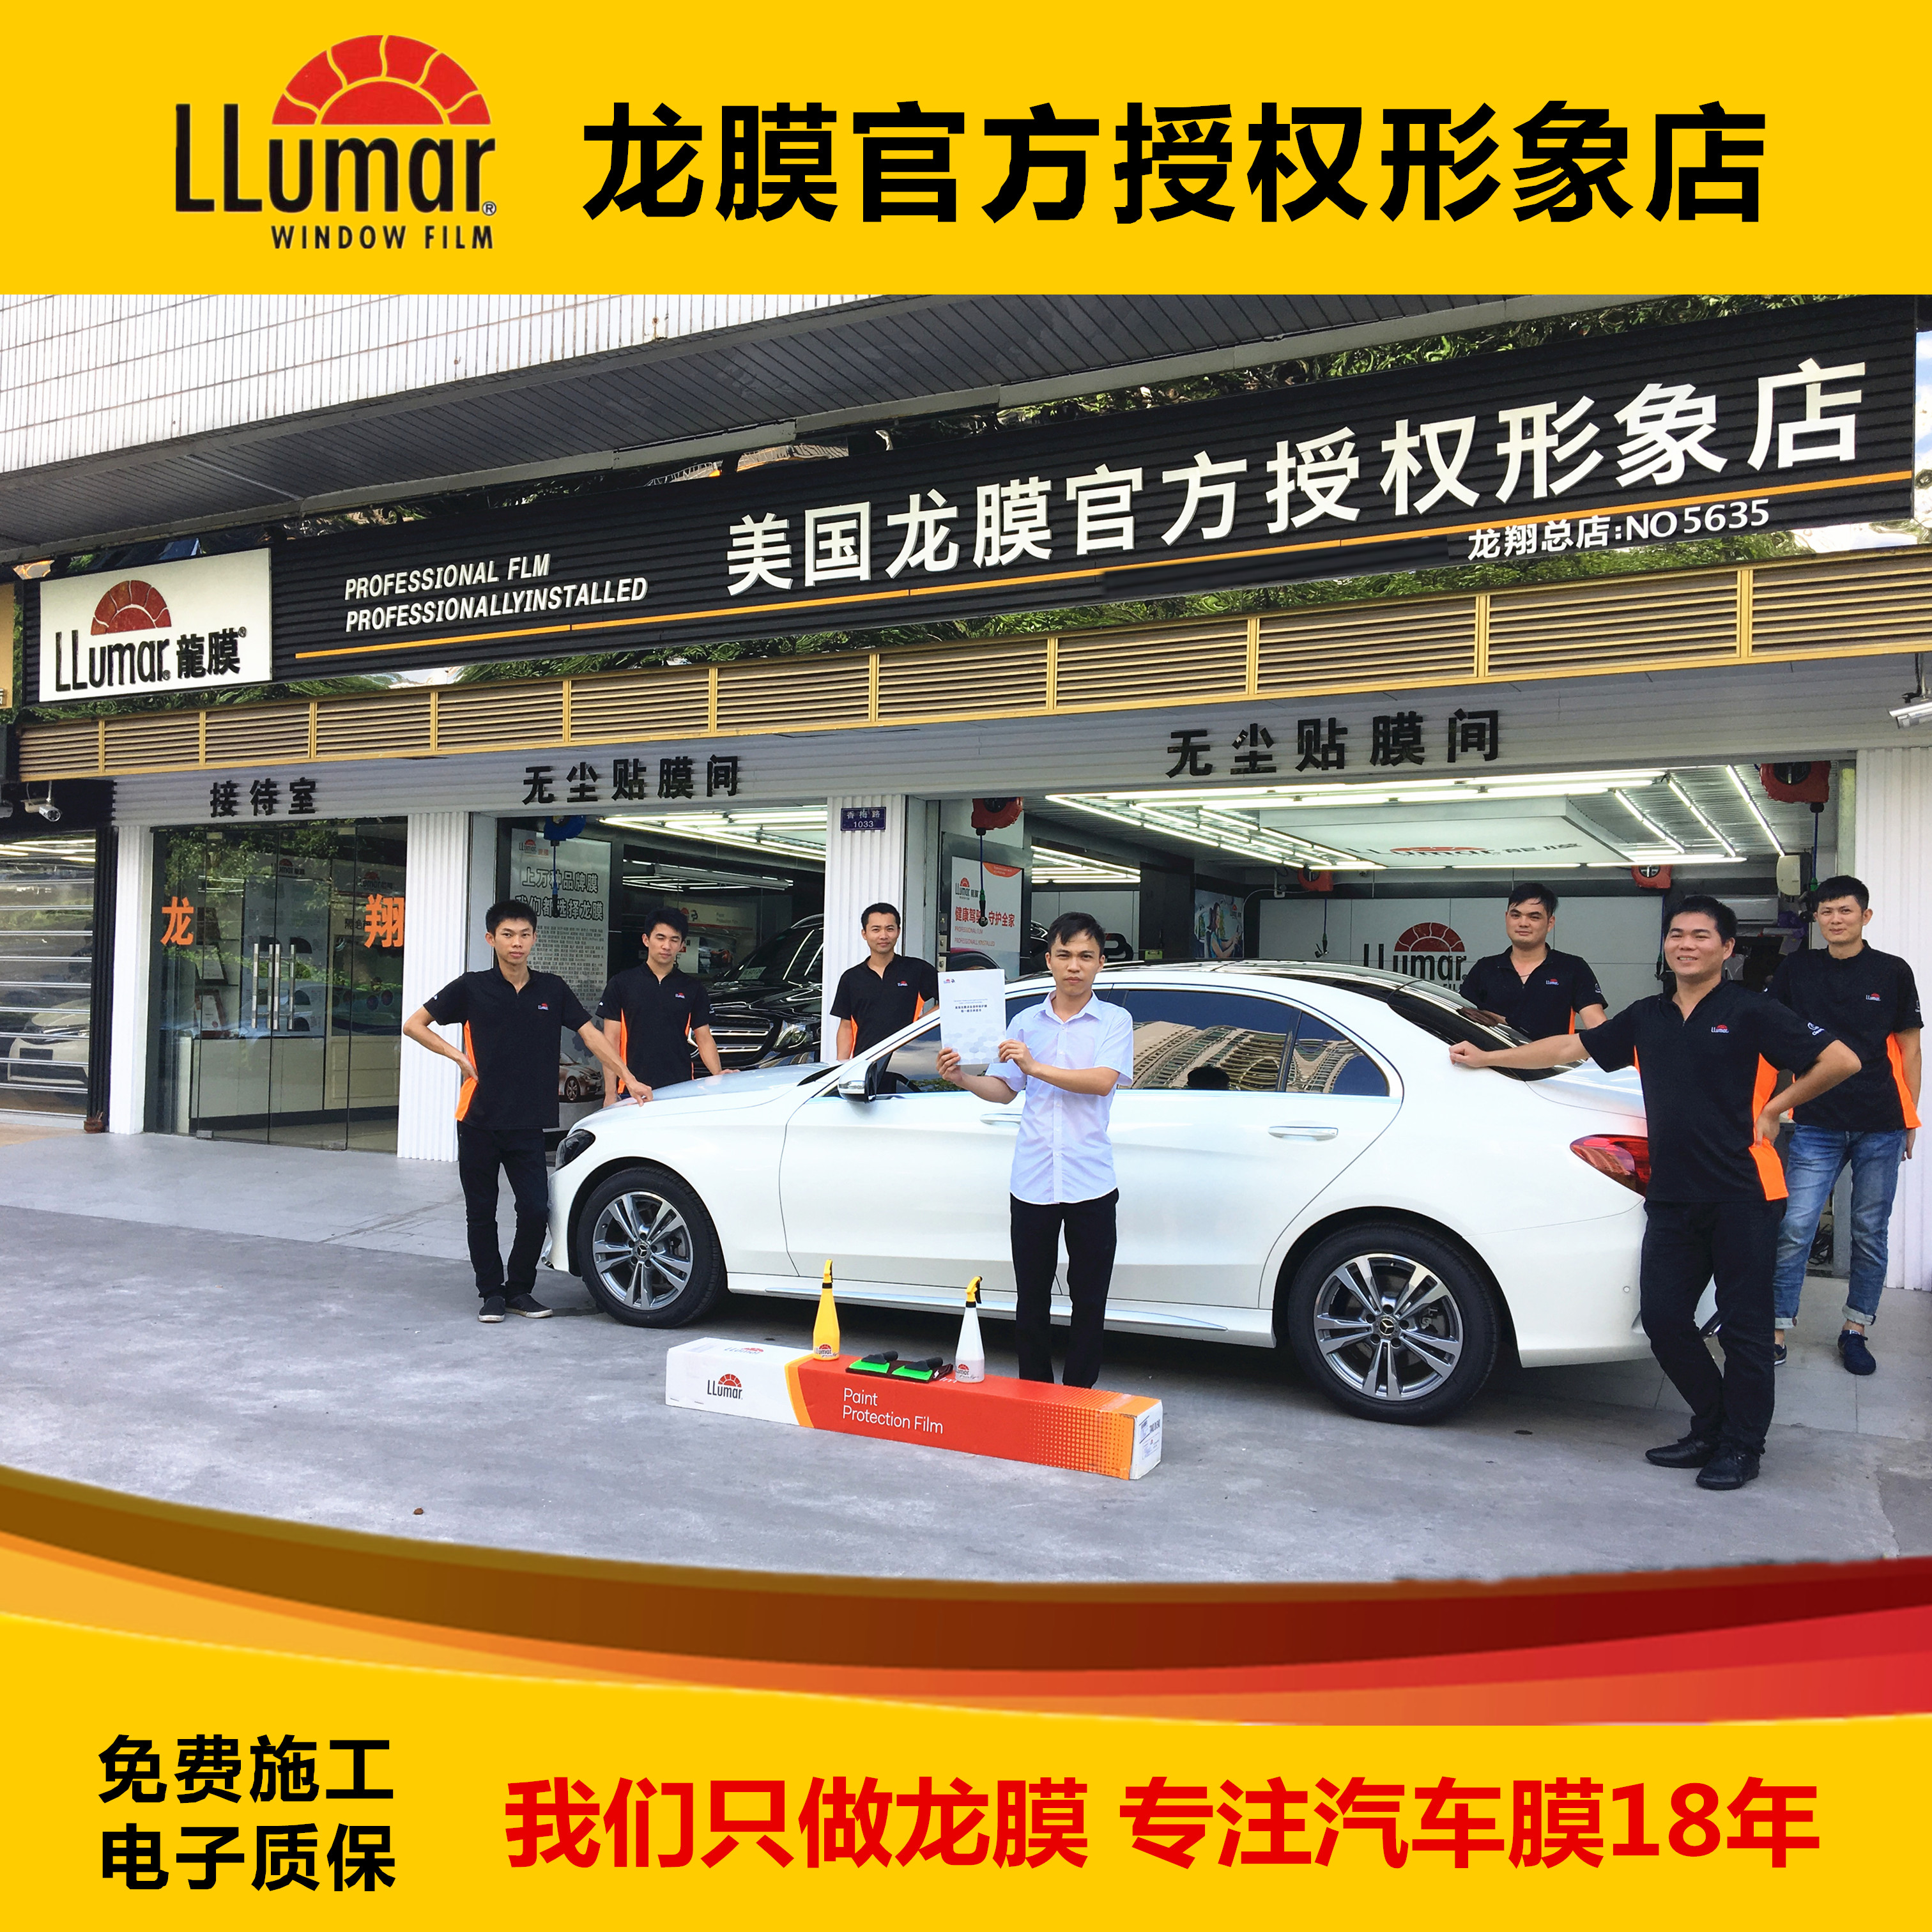 Longman Automobile Film Adhesion Official Authorized Store Changyue 80/Houyi 70 Automobile Film Glass Film Insulation Film Solar Film